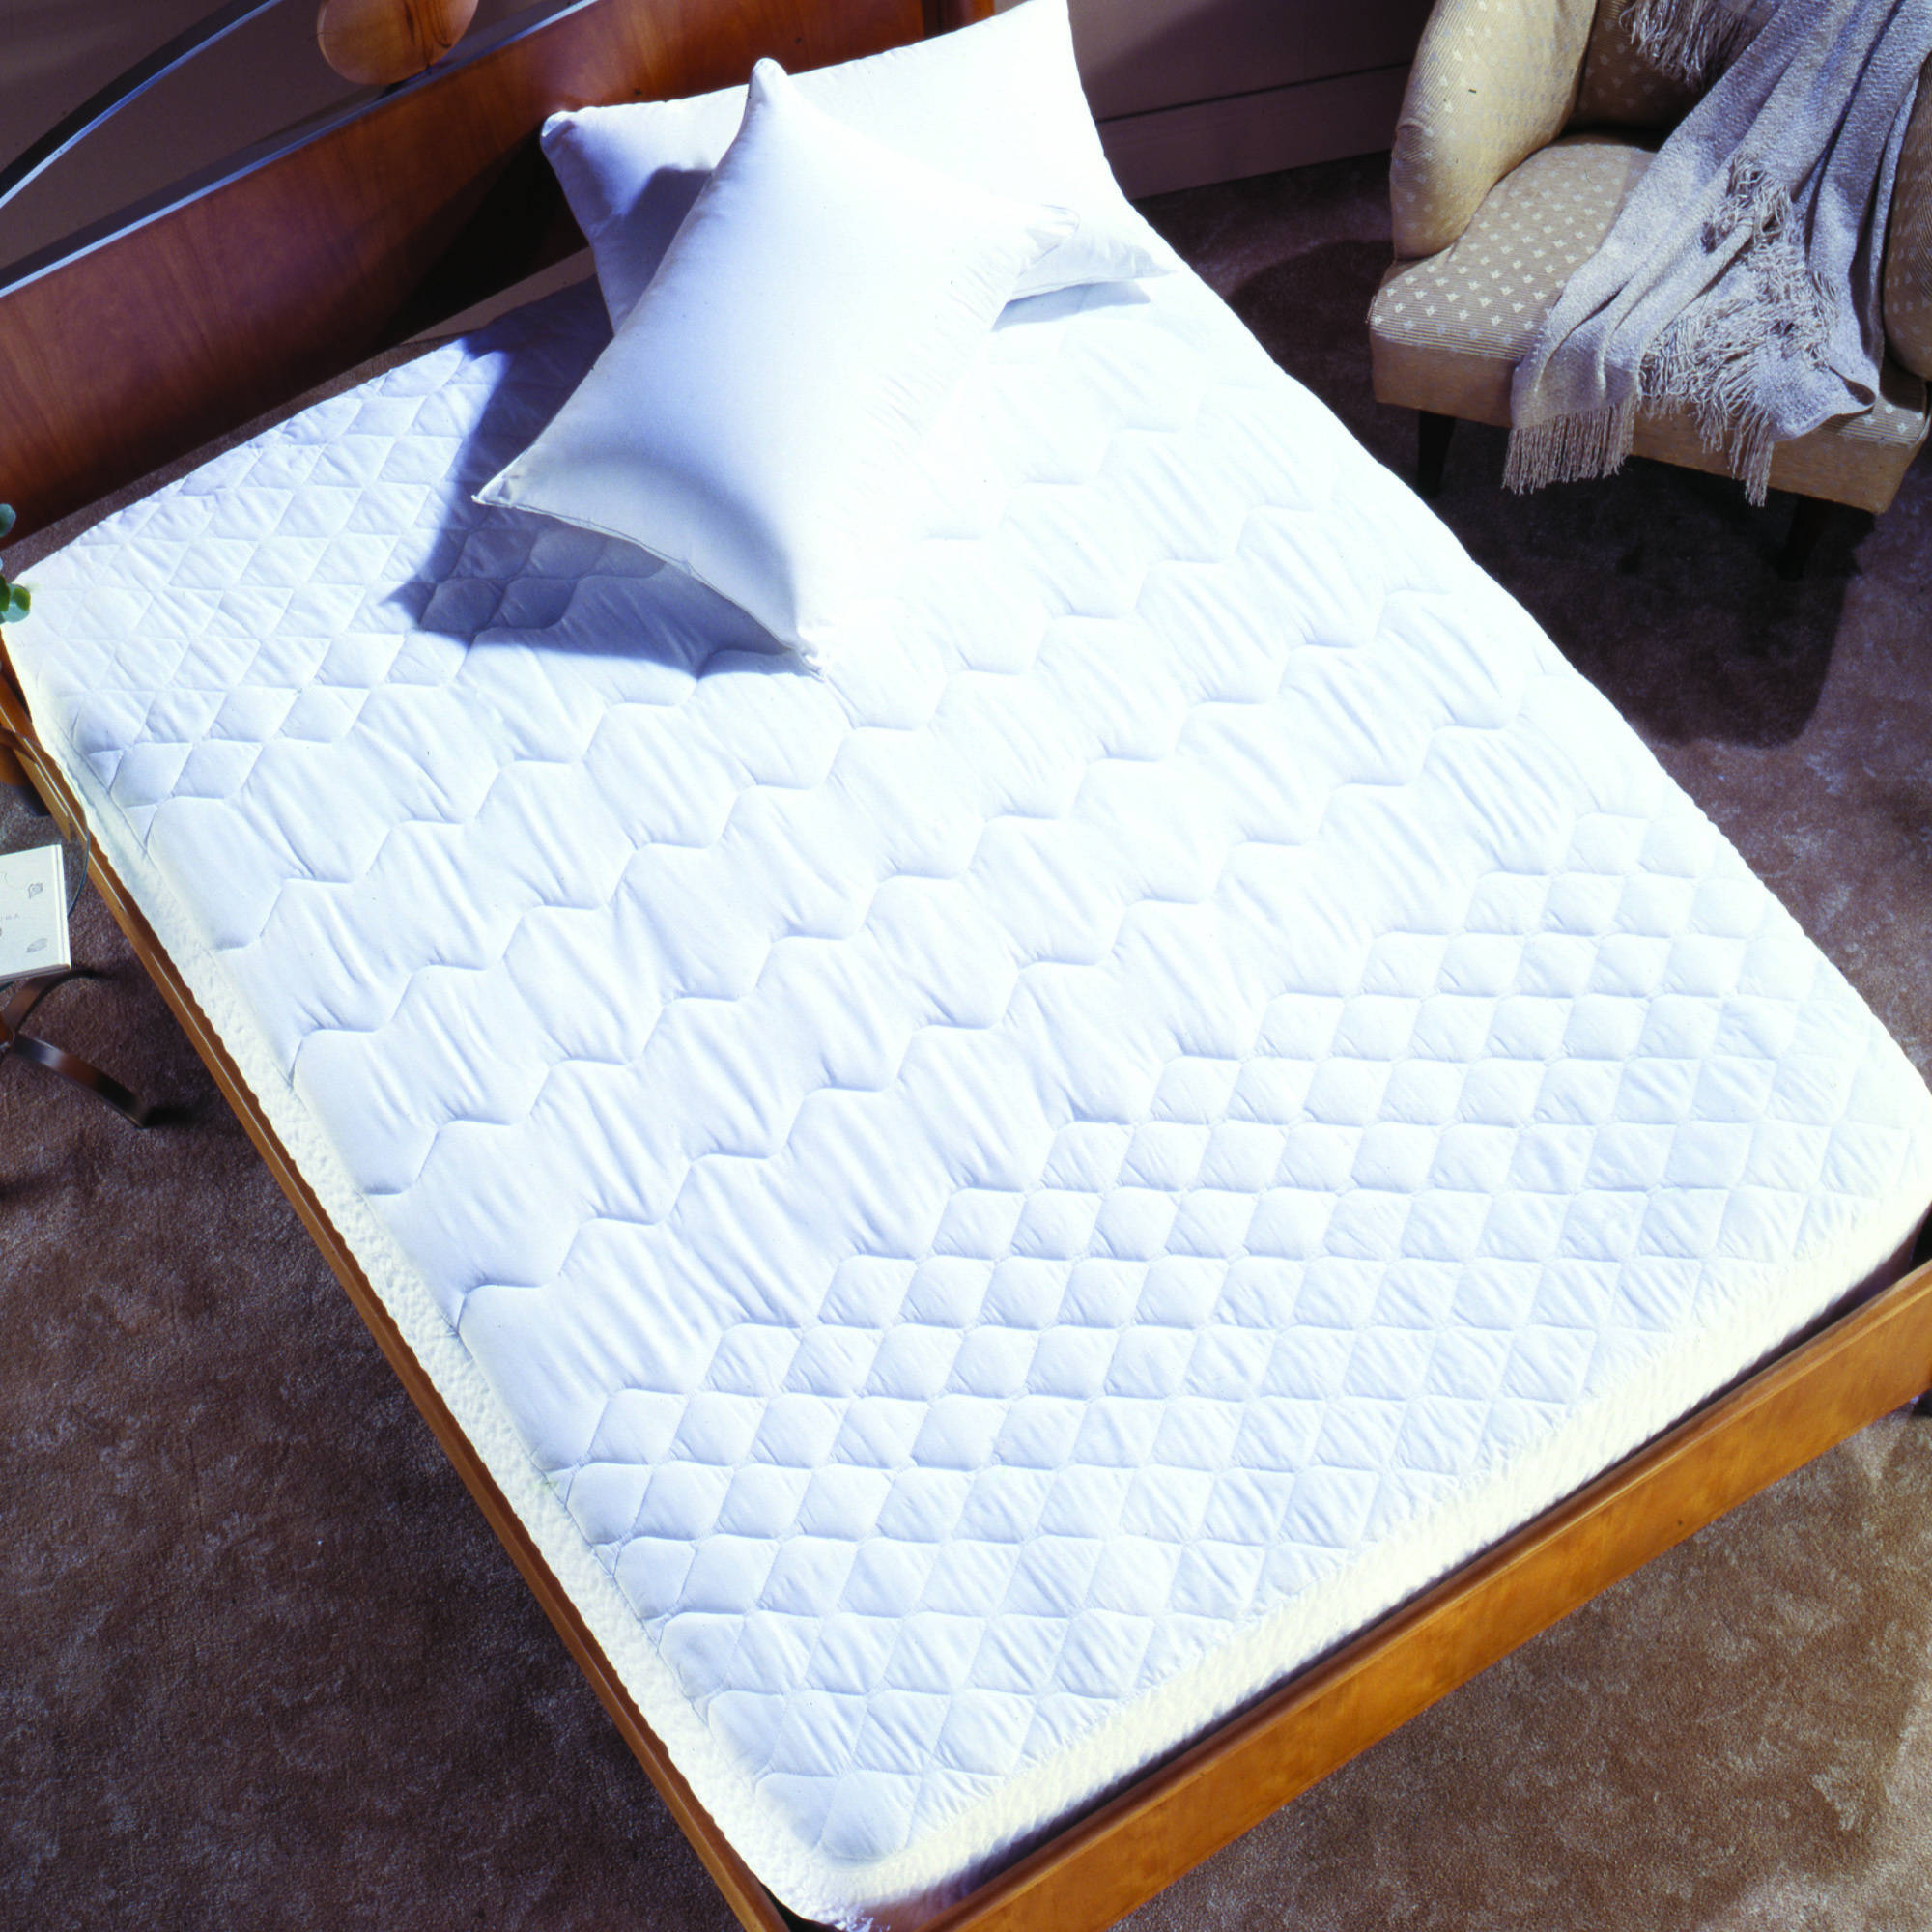 Beautyrest Tri-Zone Mattress Pads in Multiple Sizes